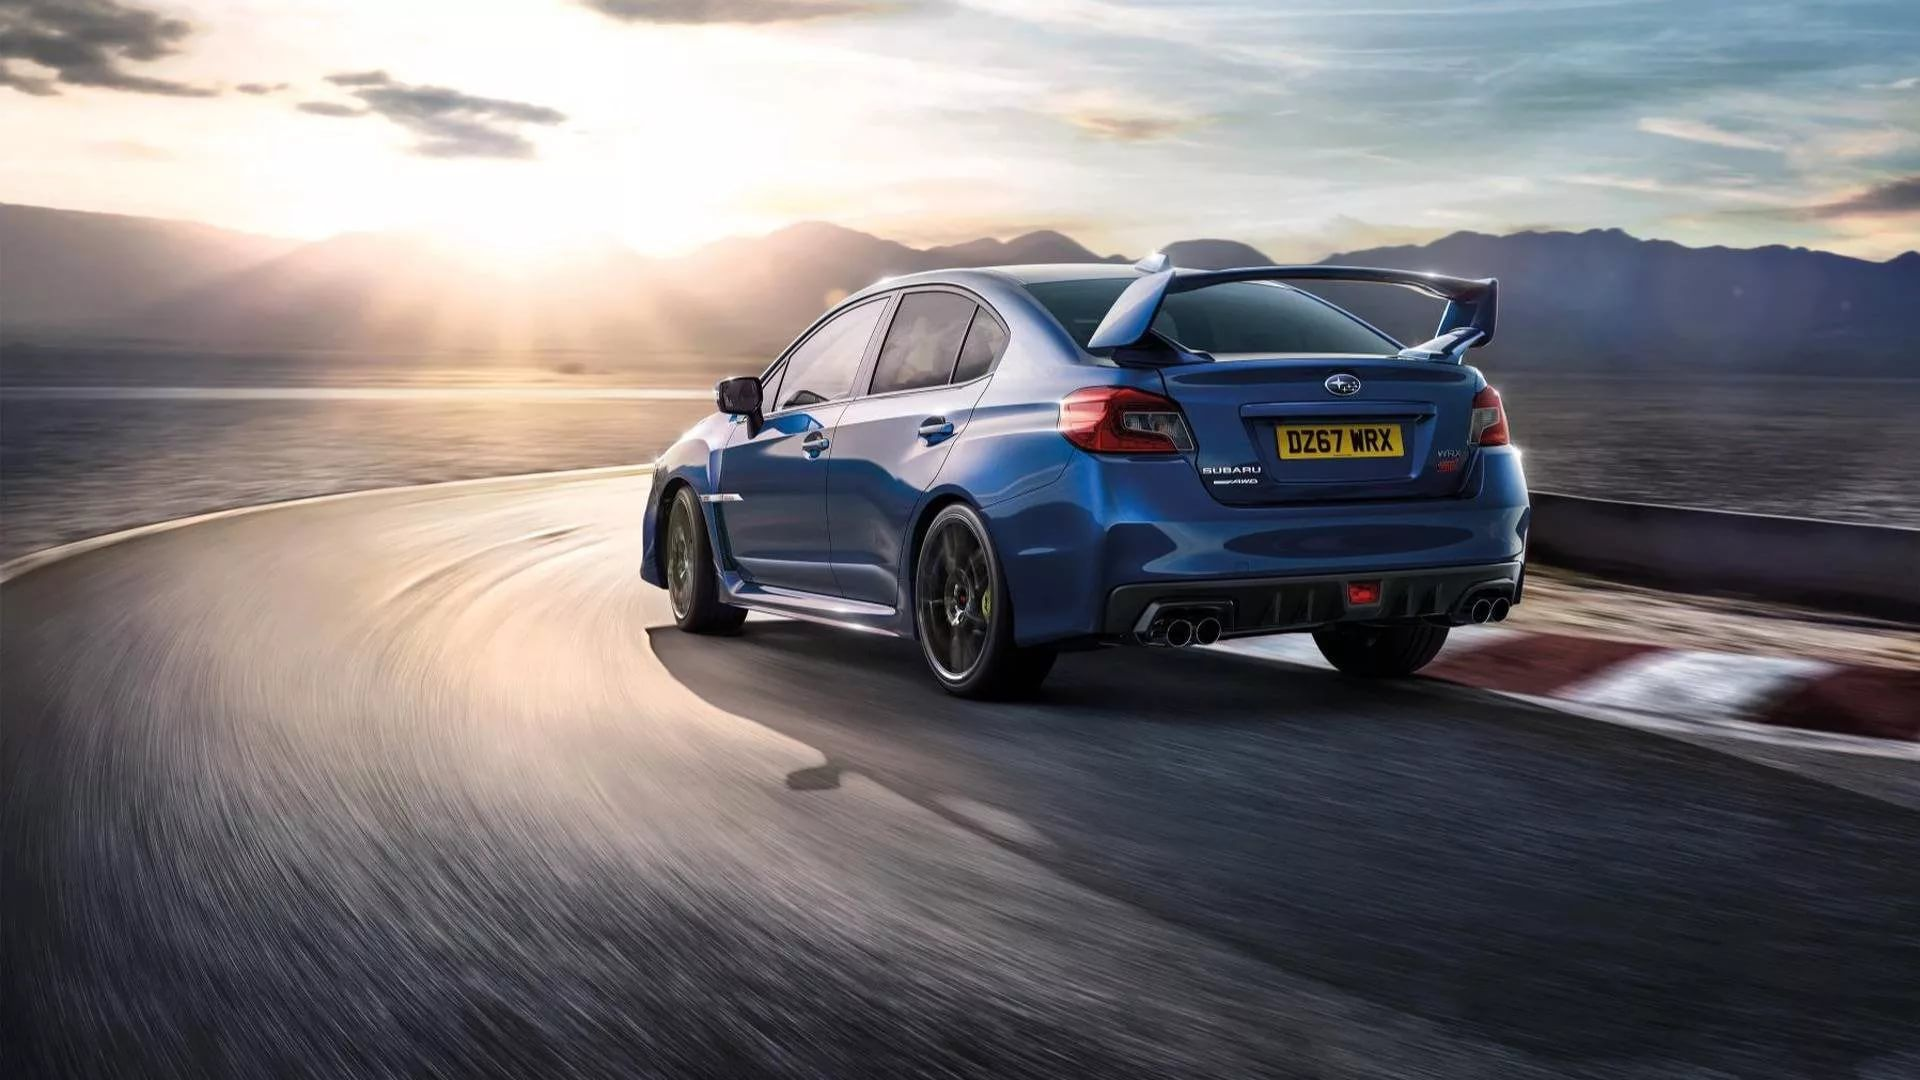 Subaru WRX hd wallpaper download